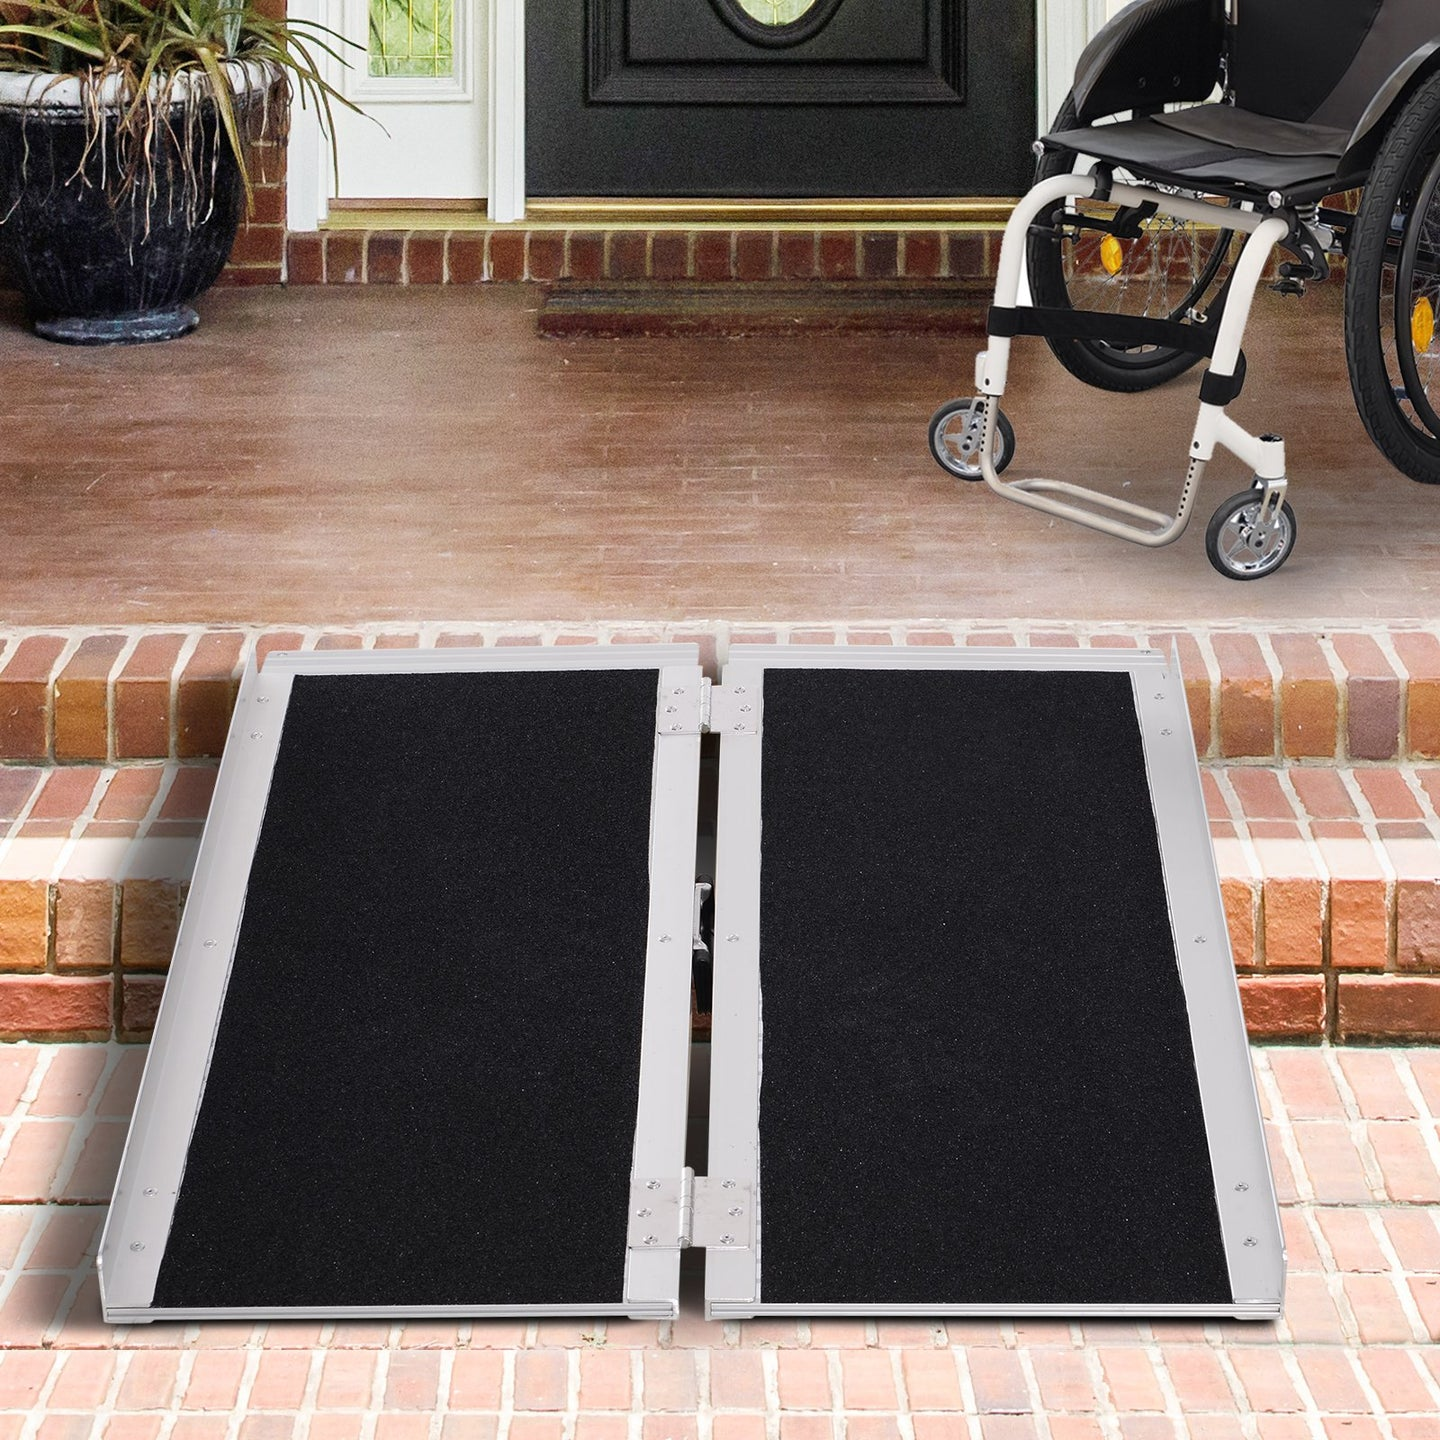 HOMCOM Aluminium Folding Wheelchair Ramp w/ Handle Black